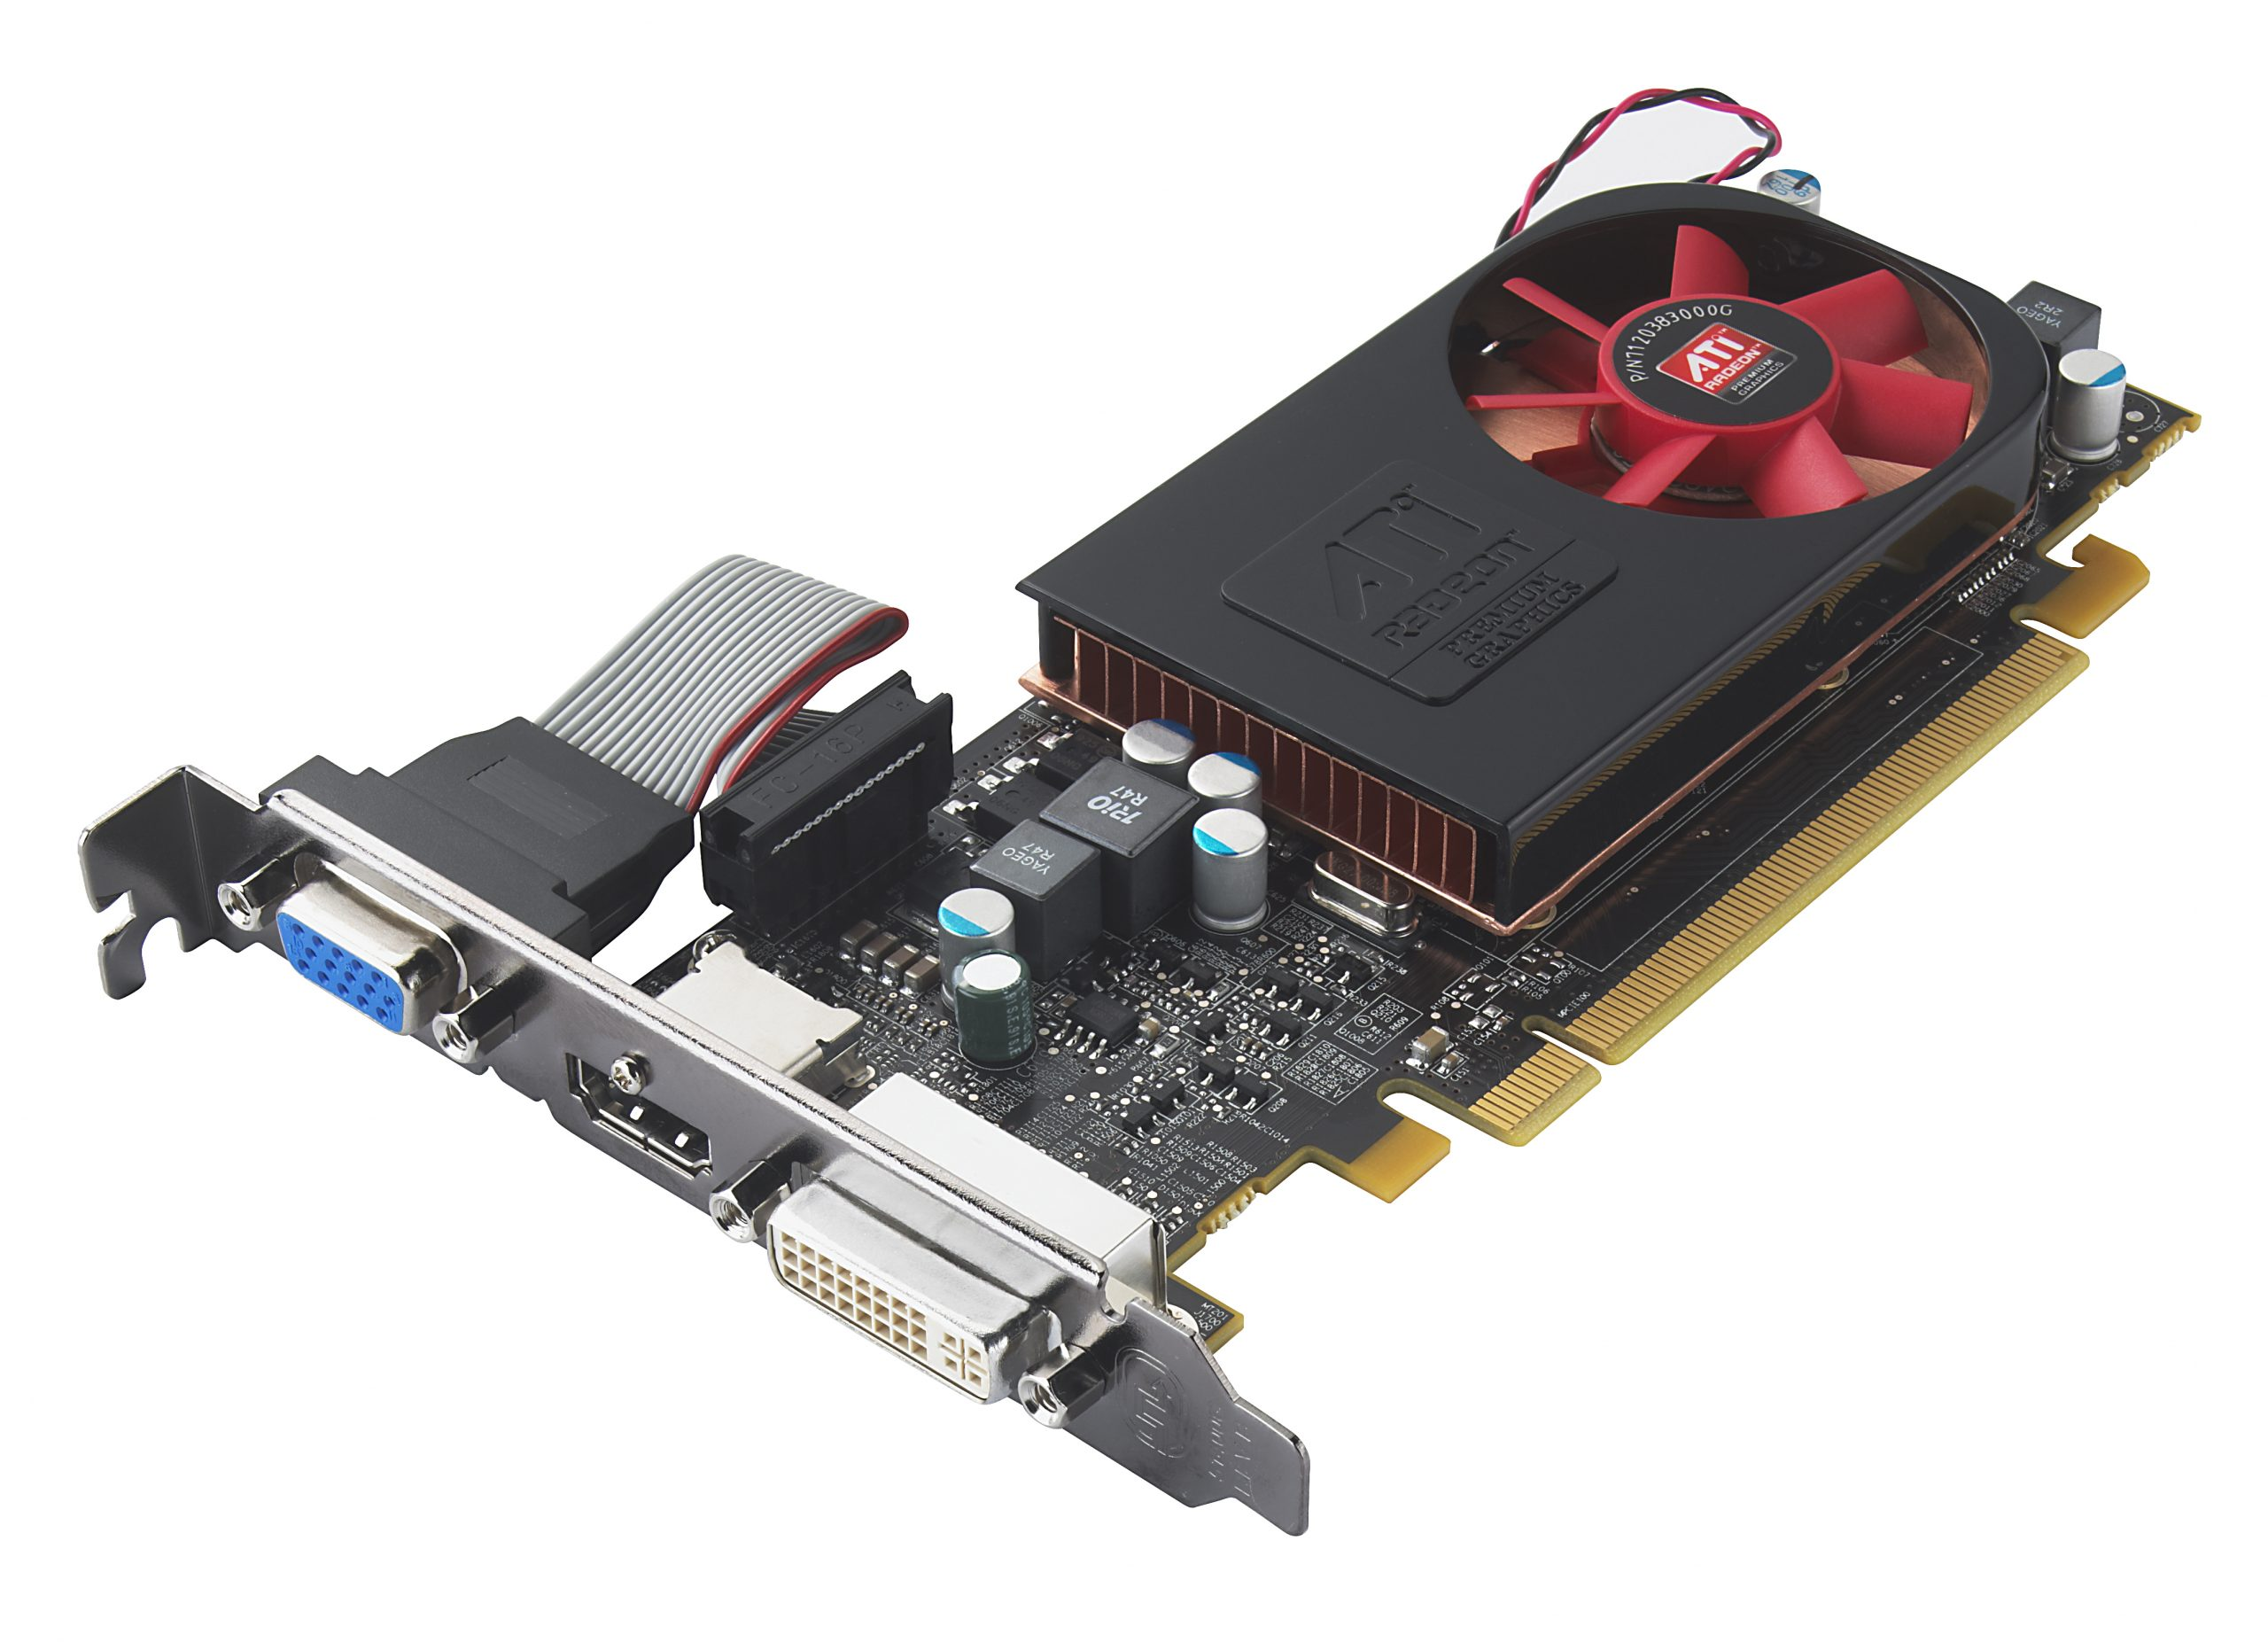 ATI RADEON HD 5630 DRIVERS FOR WINDOWS